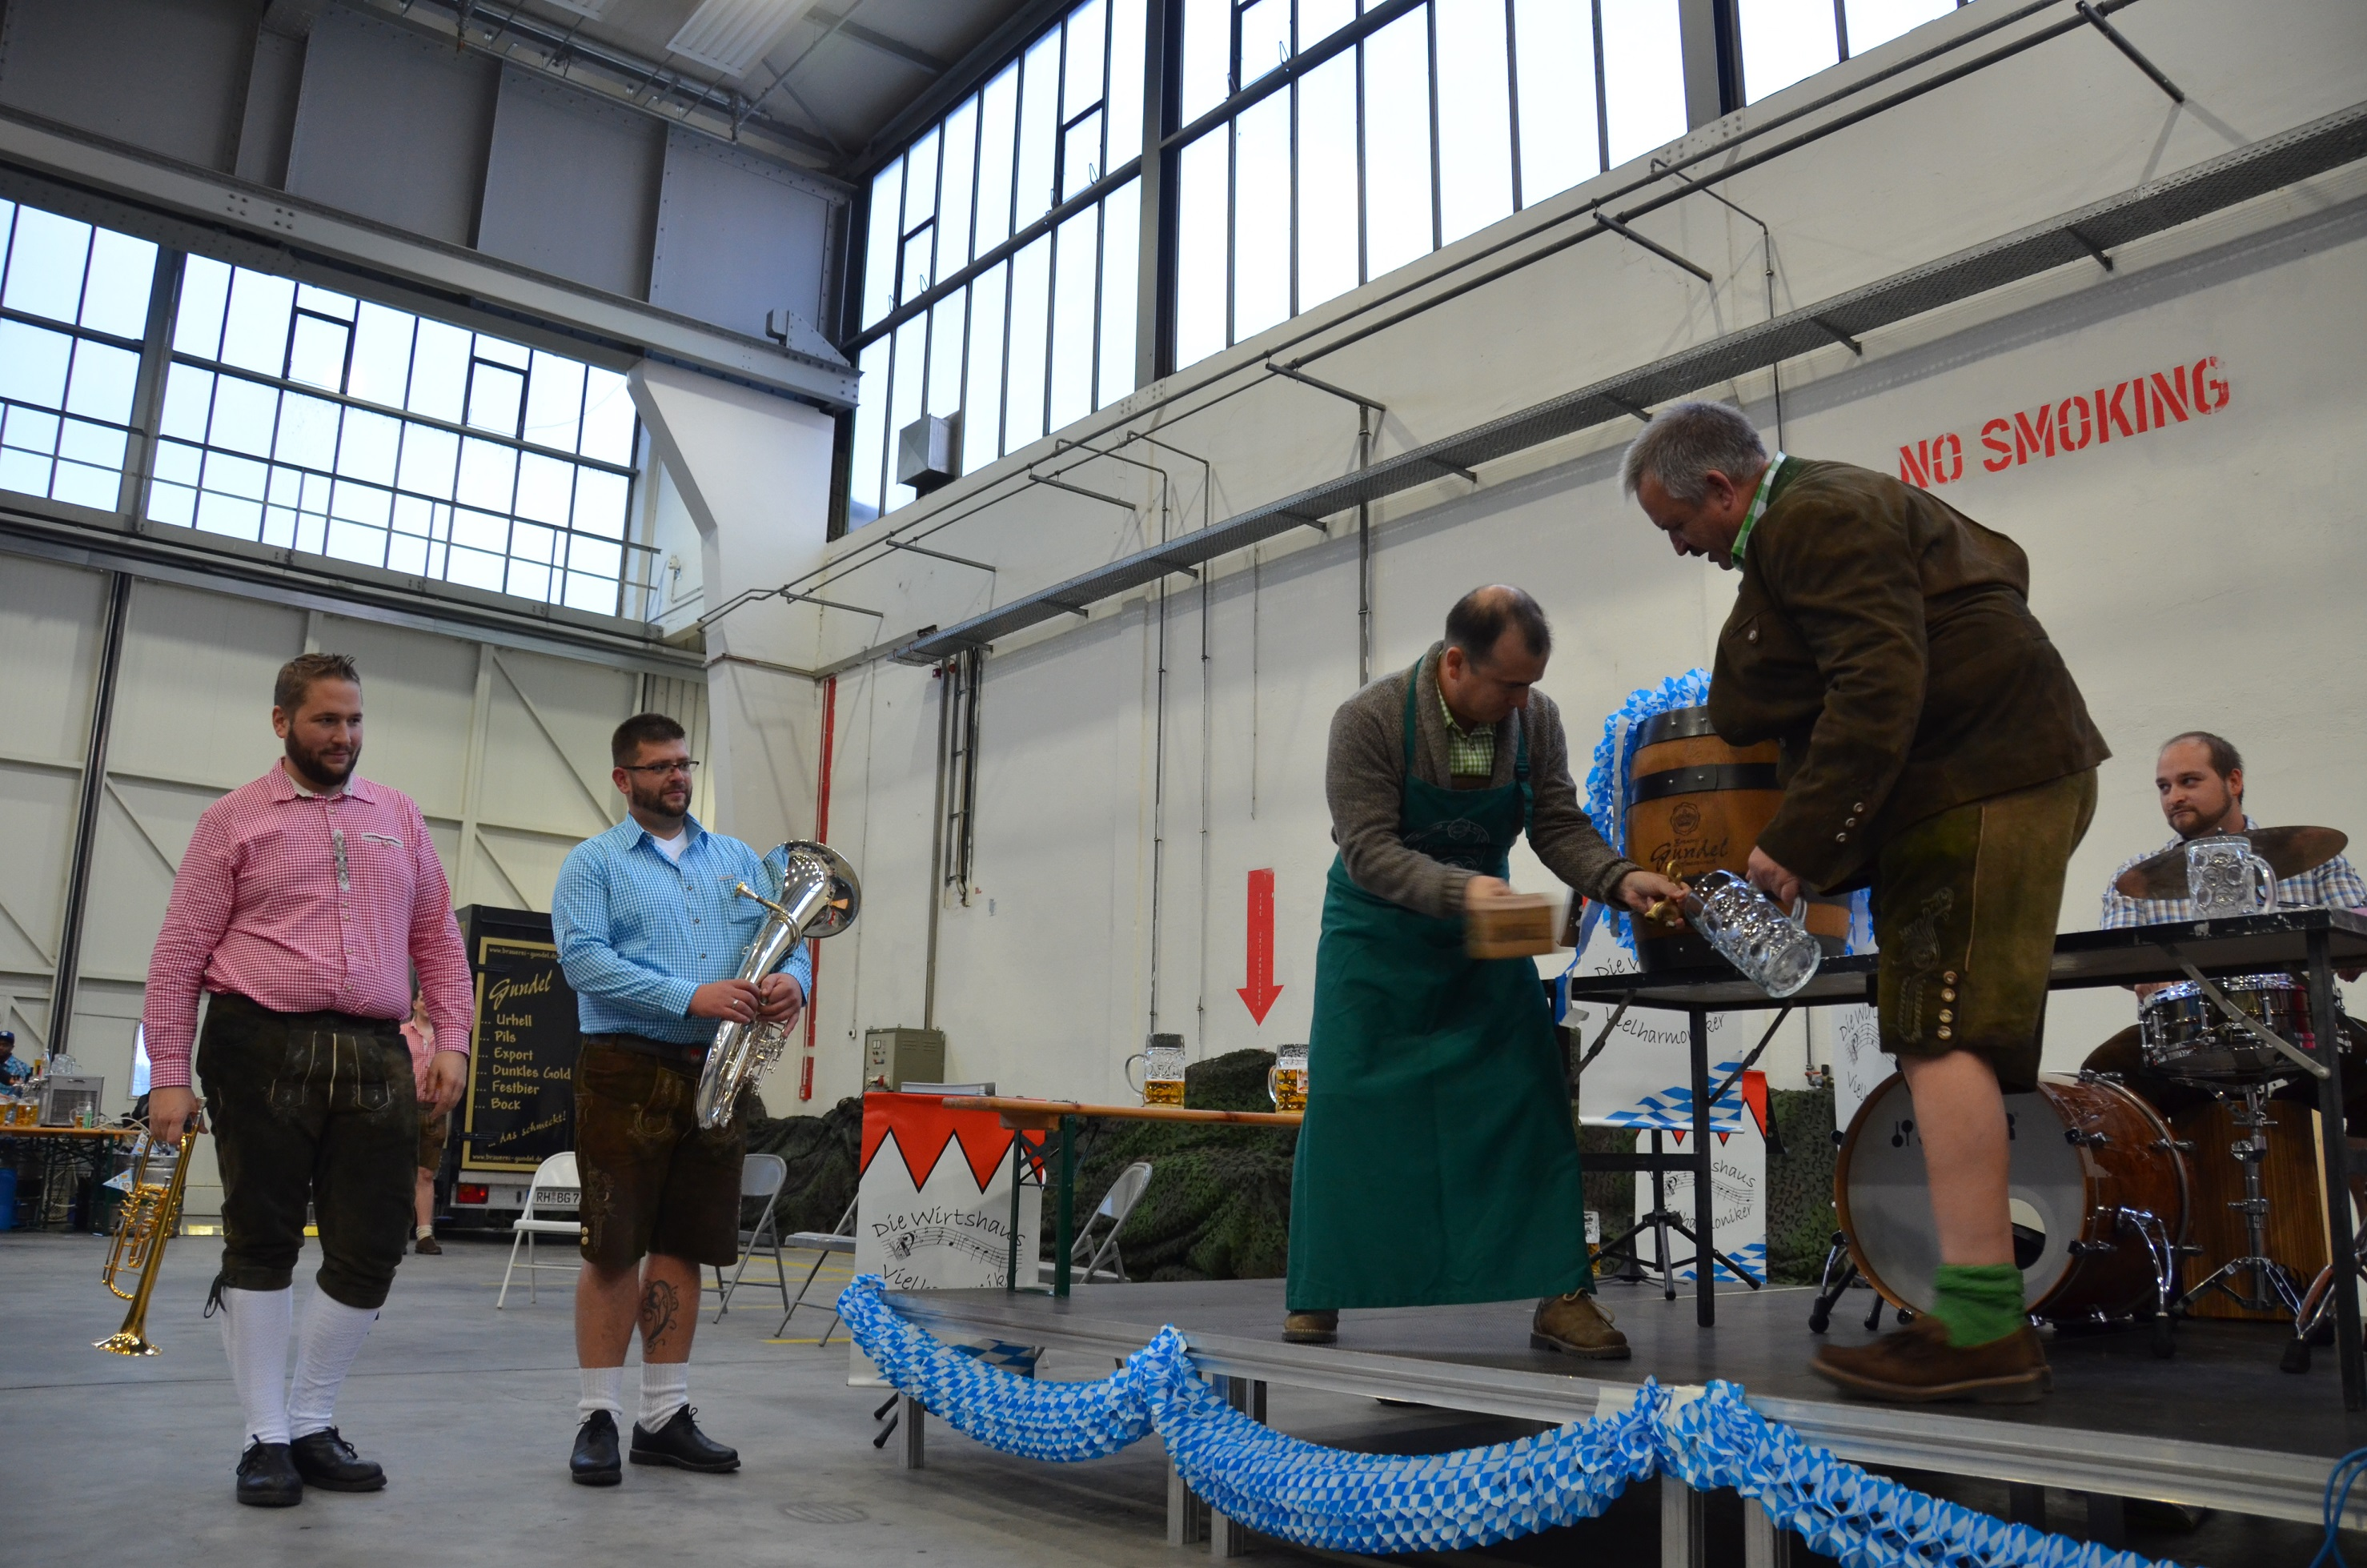 ILLESHEIM, Germany (Nov. 1, 2016) -- Lt. Col. Jason Arriaga, commander of 3rd Battalion (Assault Helicopter), 501st Aviation Regiment, Combat Aviation Brigade, 1st Armored Division, taps into the ceremonial beer barrel during 3-501st's Oktoberfest event. The battalion celebrated Oktoberfest Oct. 21 at a hangar here at Storck Barracks, where the battalion is rotationally stationed.